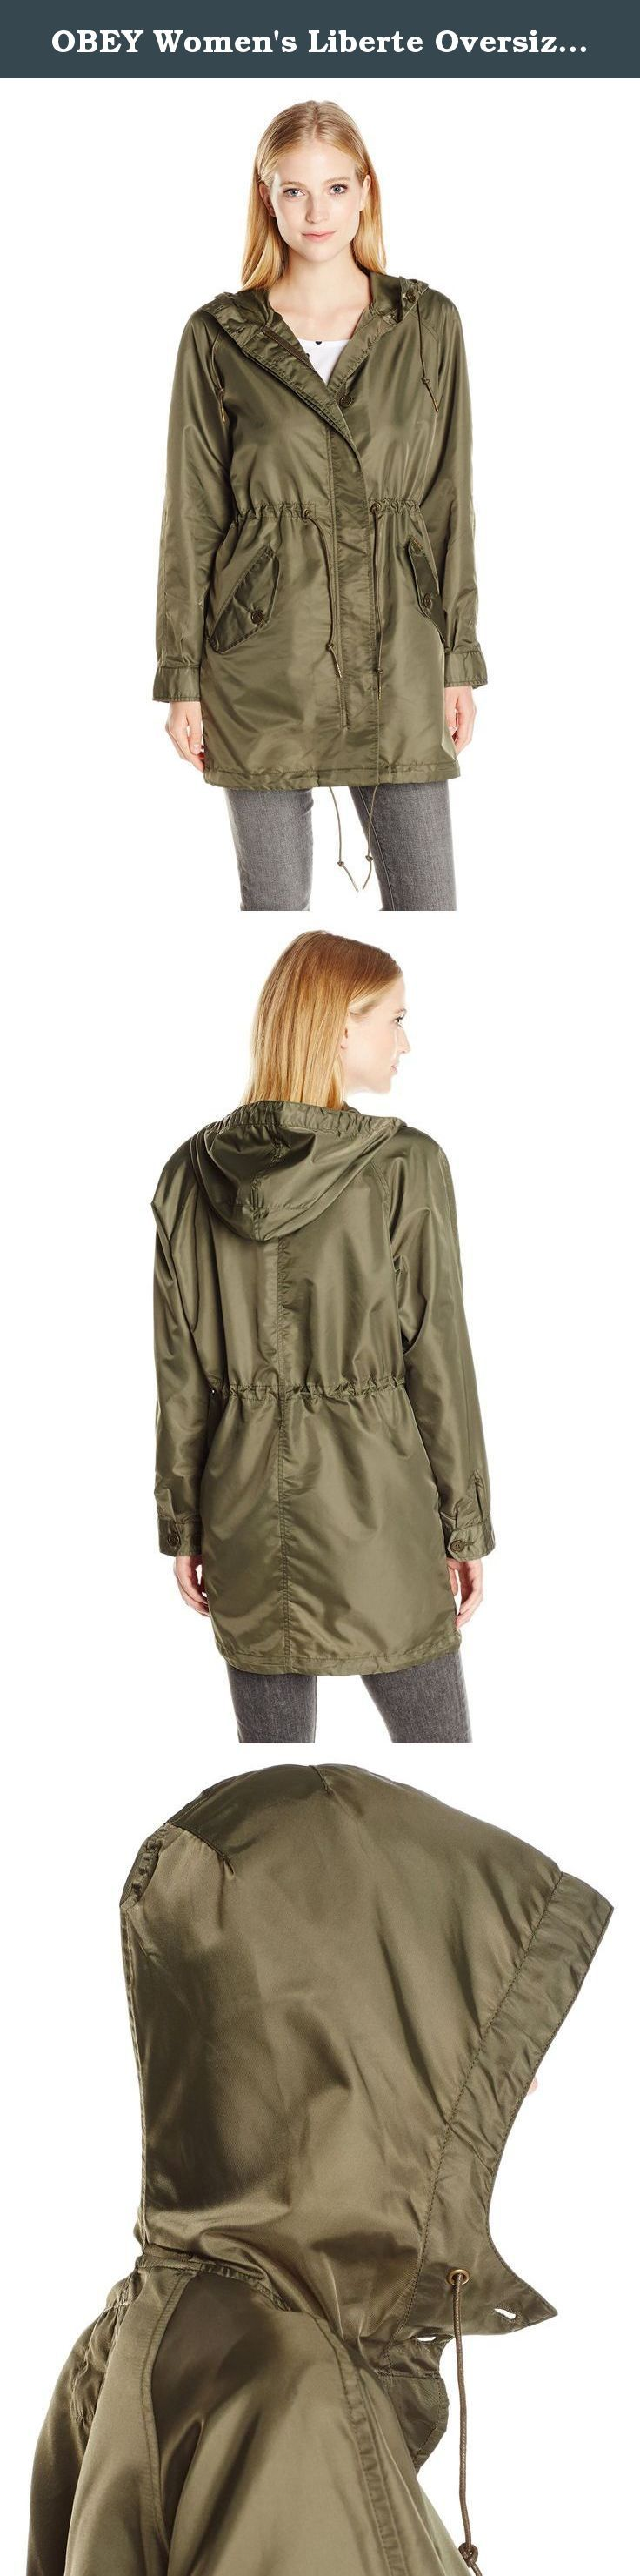 OBEY Women's Liberte Oversized Parka Jacket, Military Olive, X ...